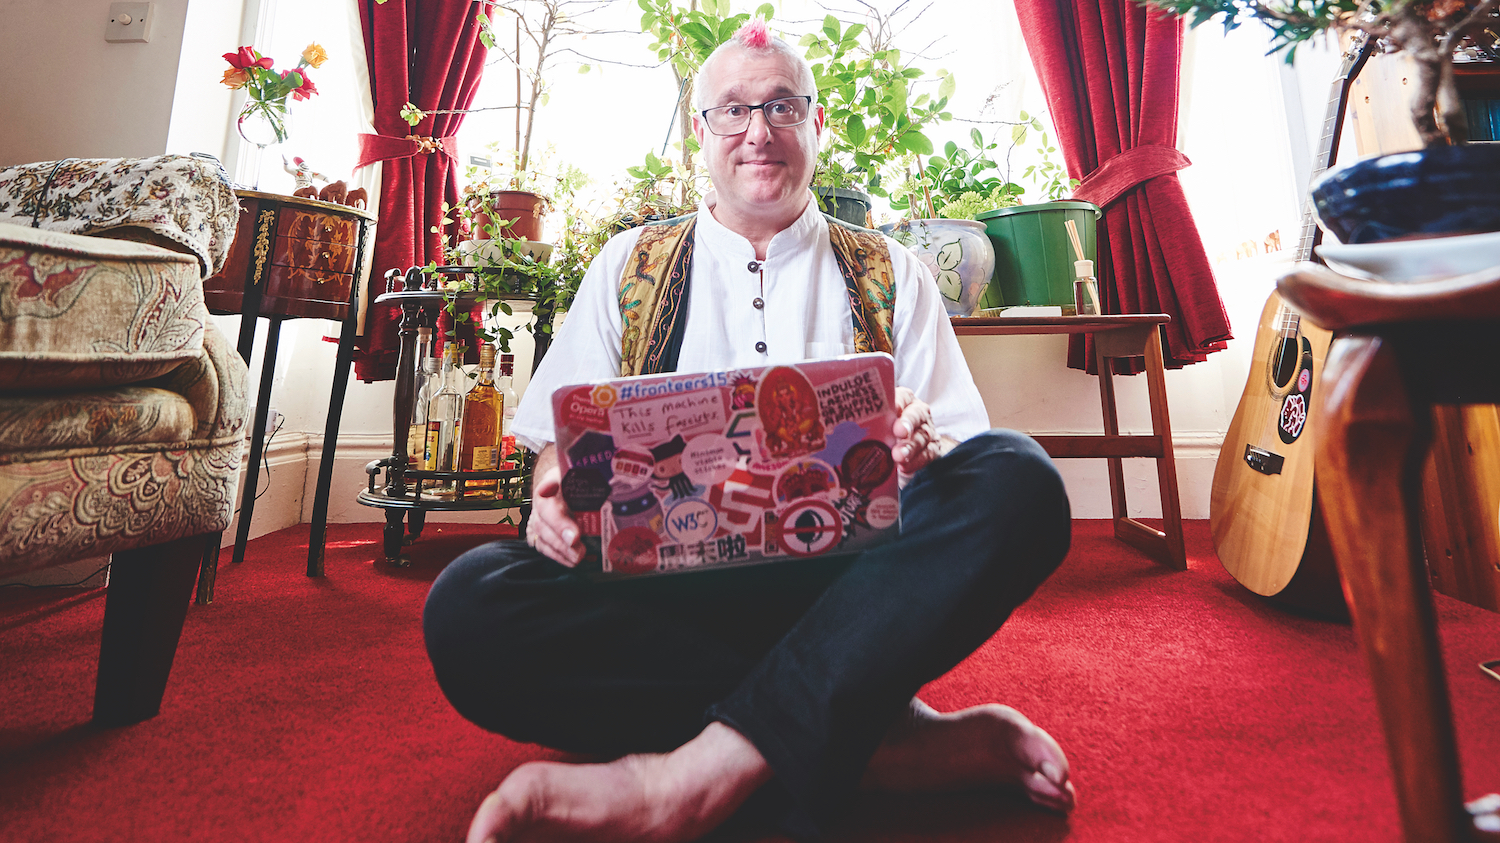 Bruce Lawson sat cross legged on a red carpet in his living room with a laptop.